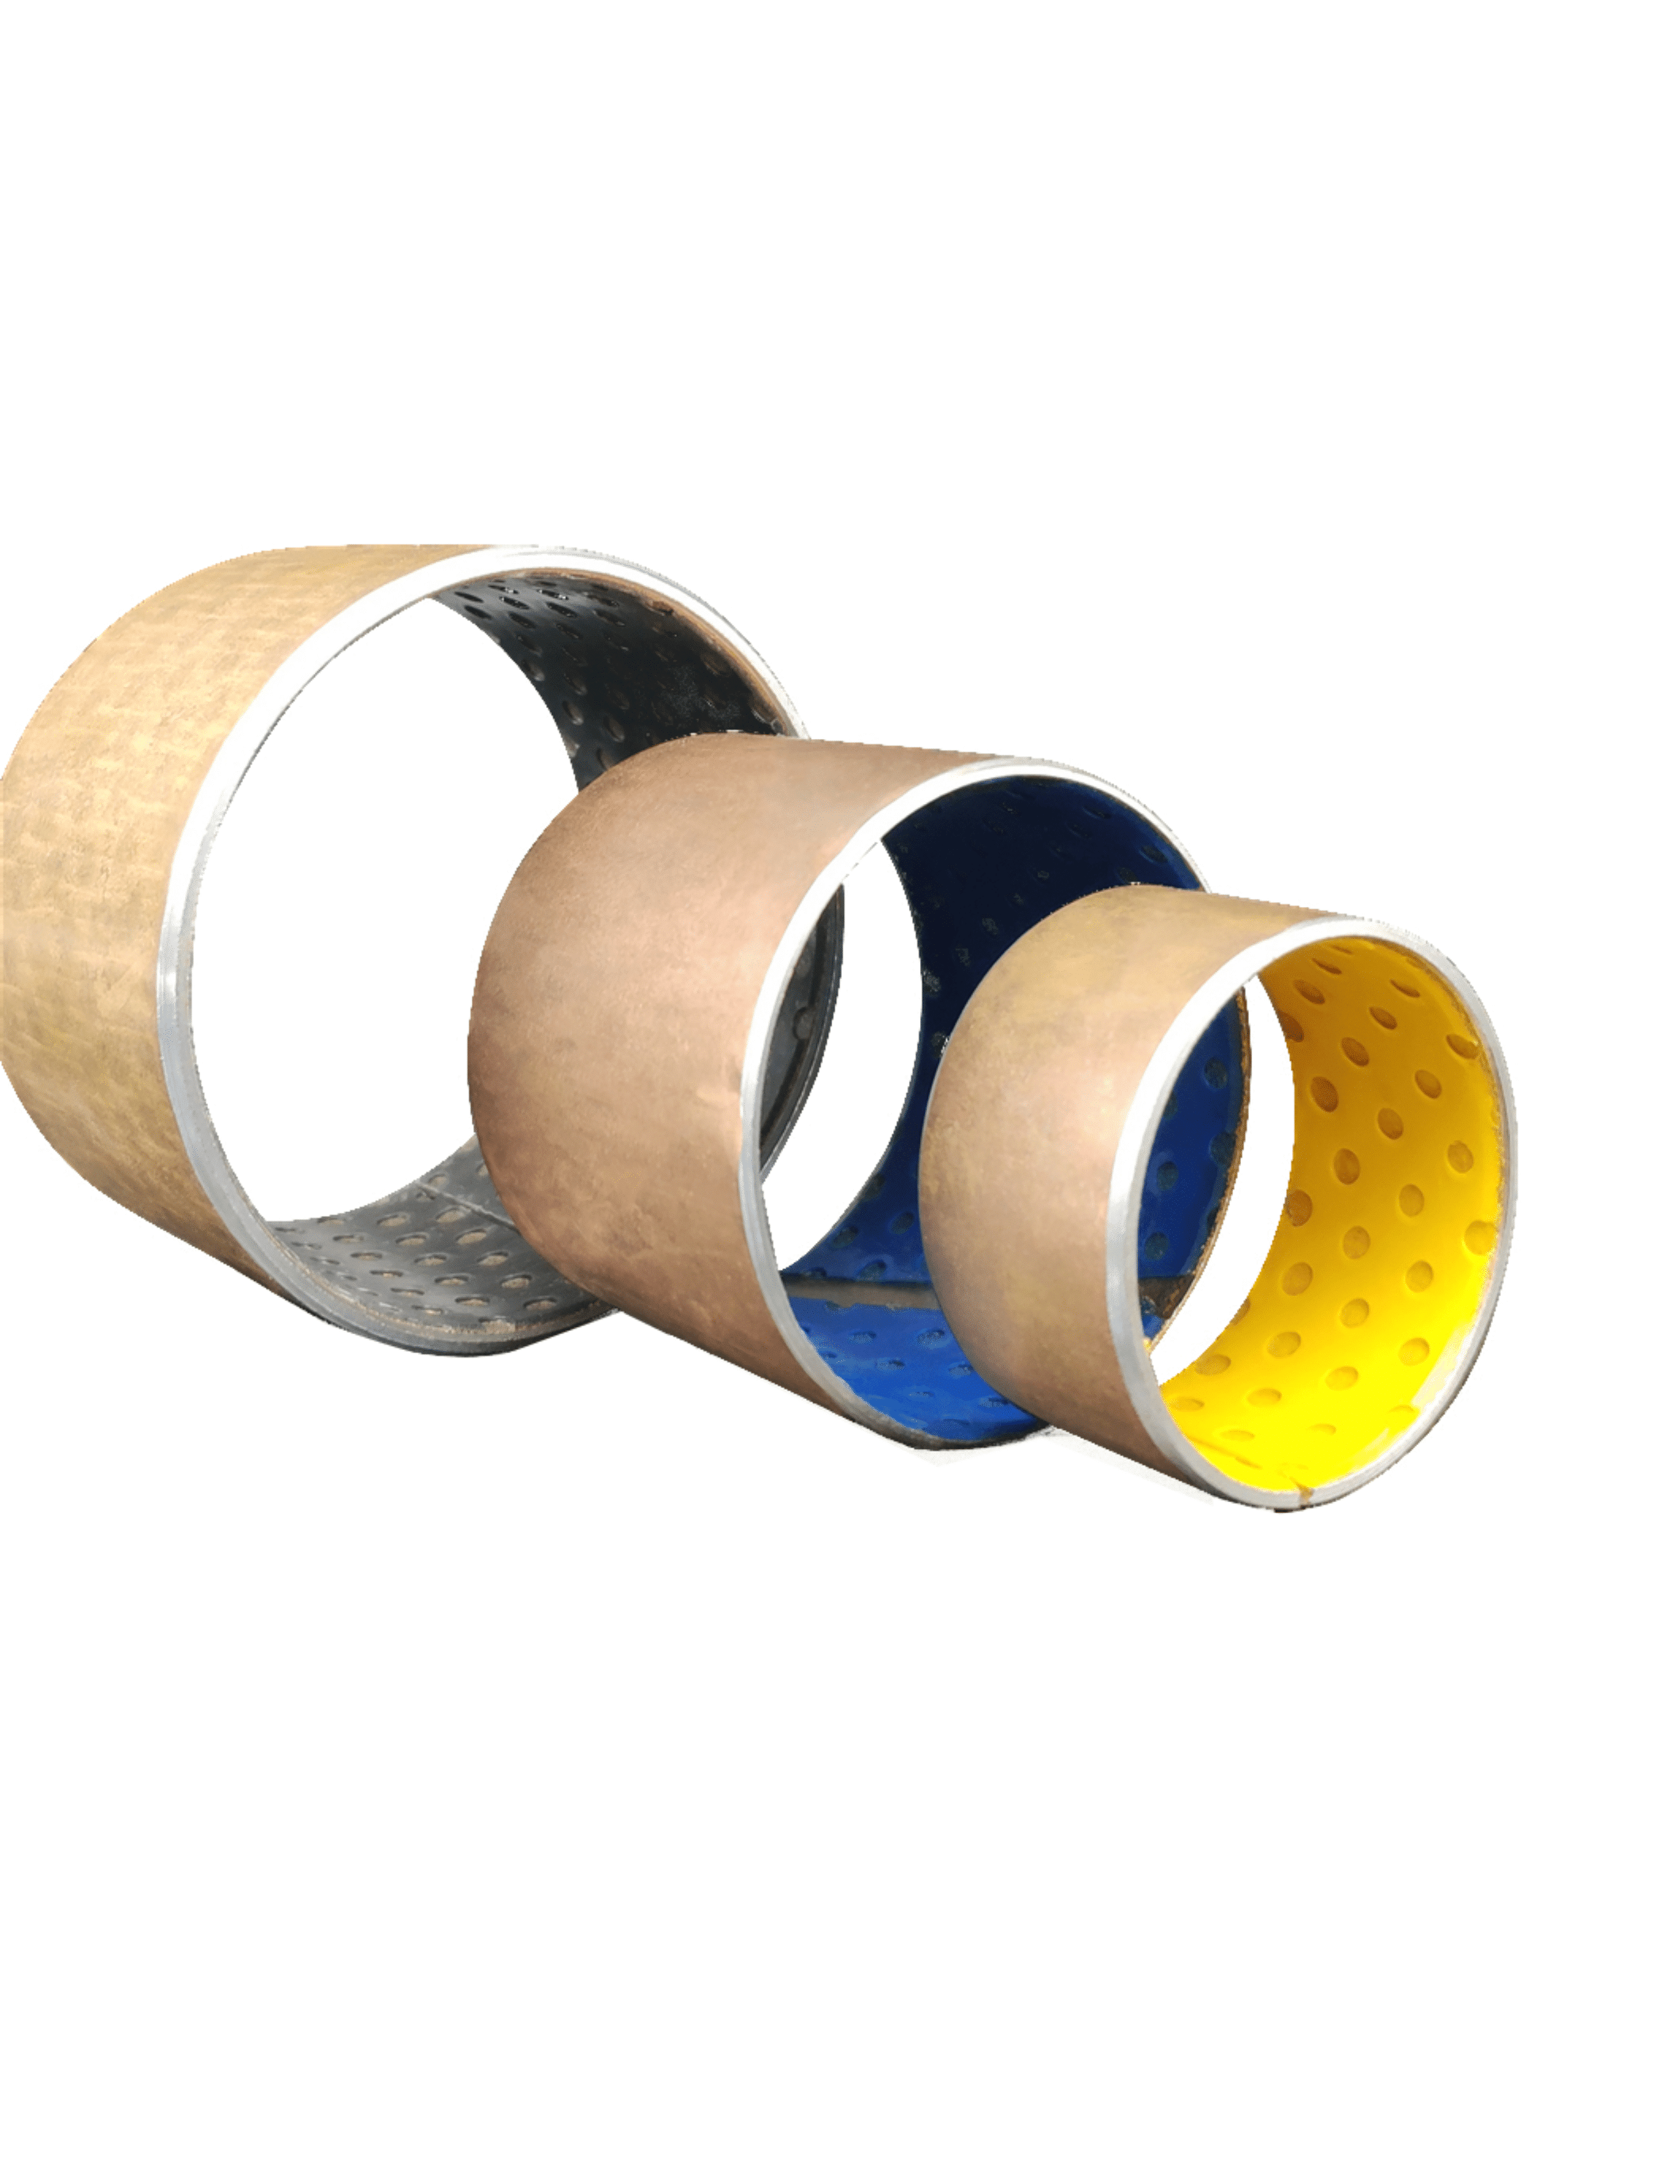 composite bushing